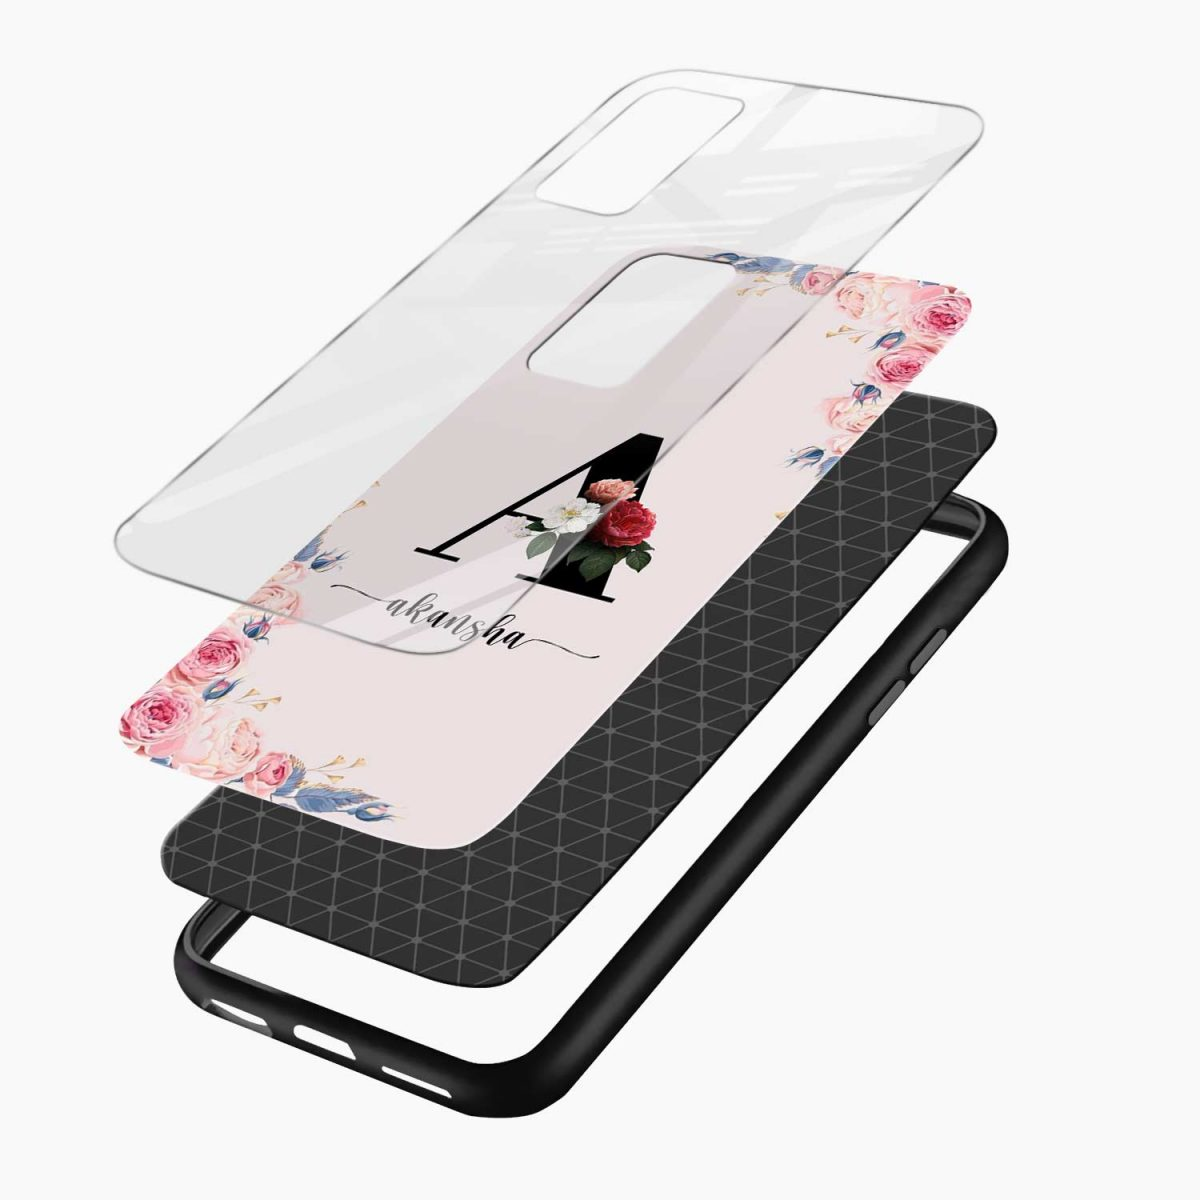 floral name personalised xiaomi mi 10t pro back cover layers view